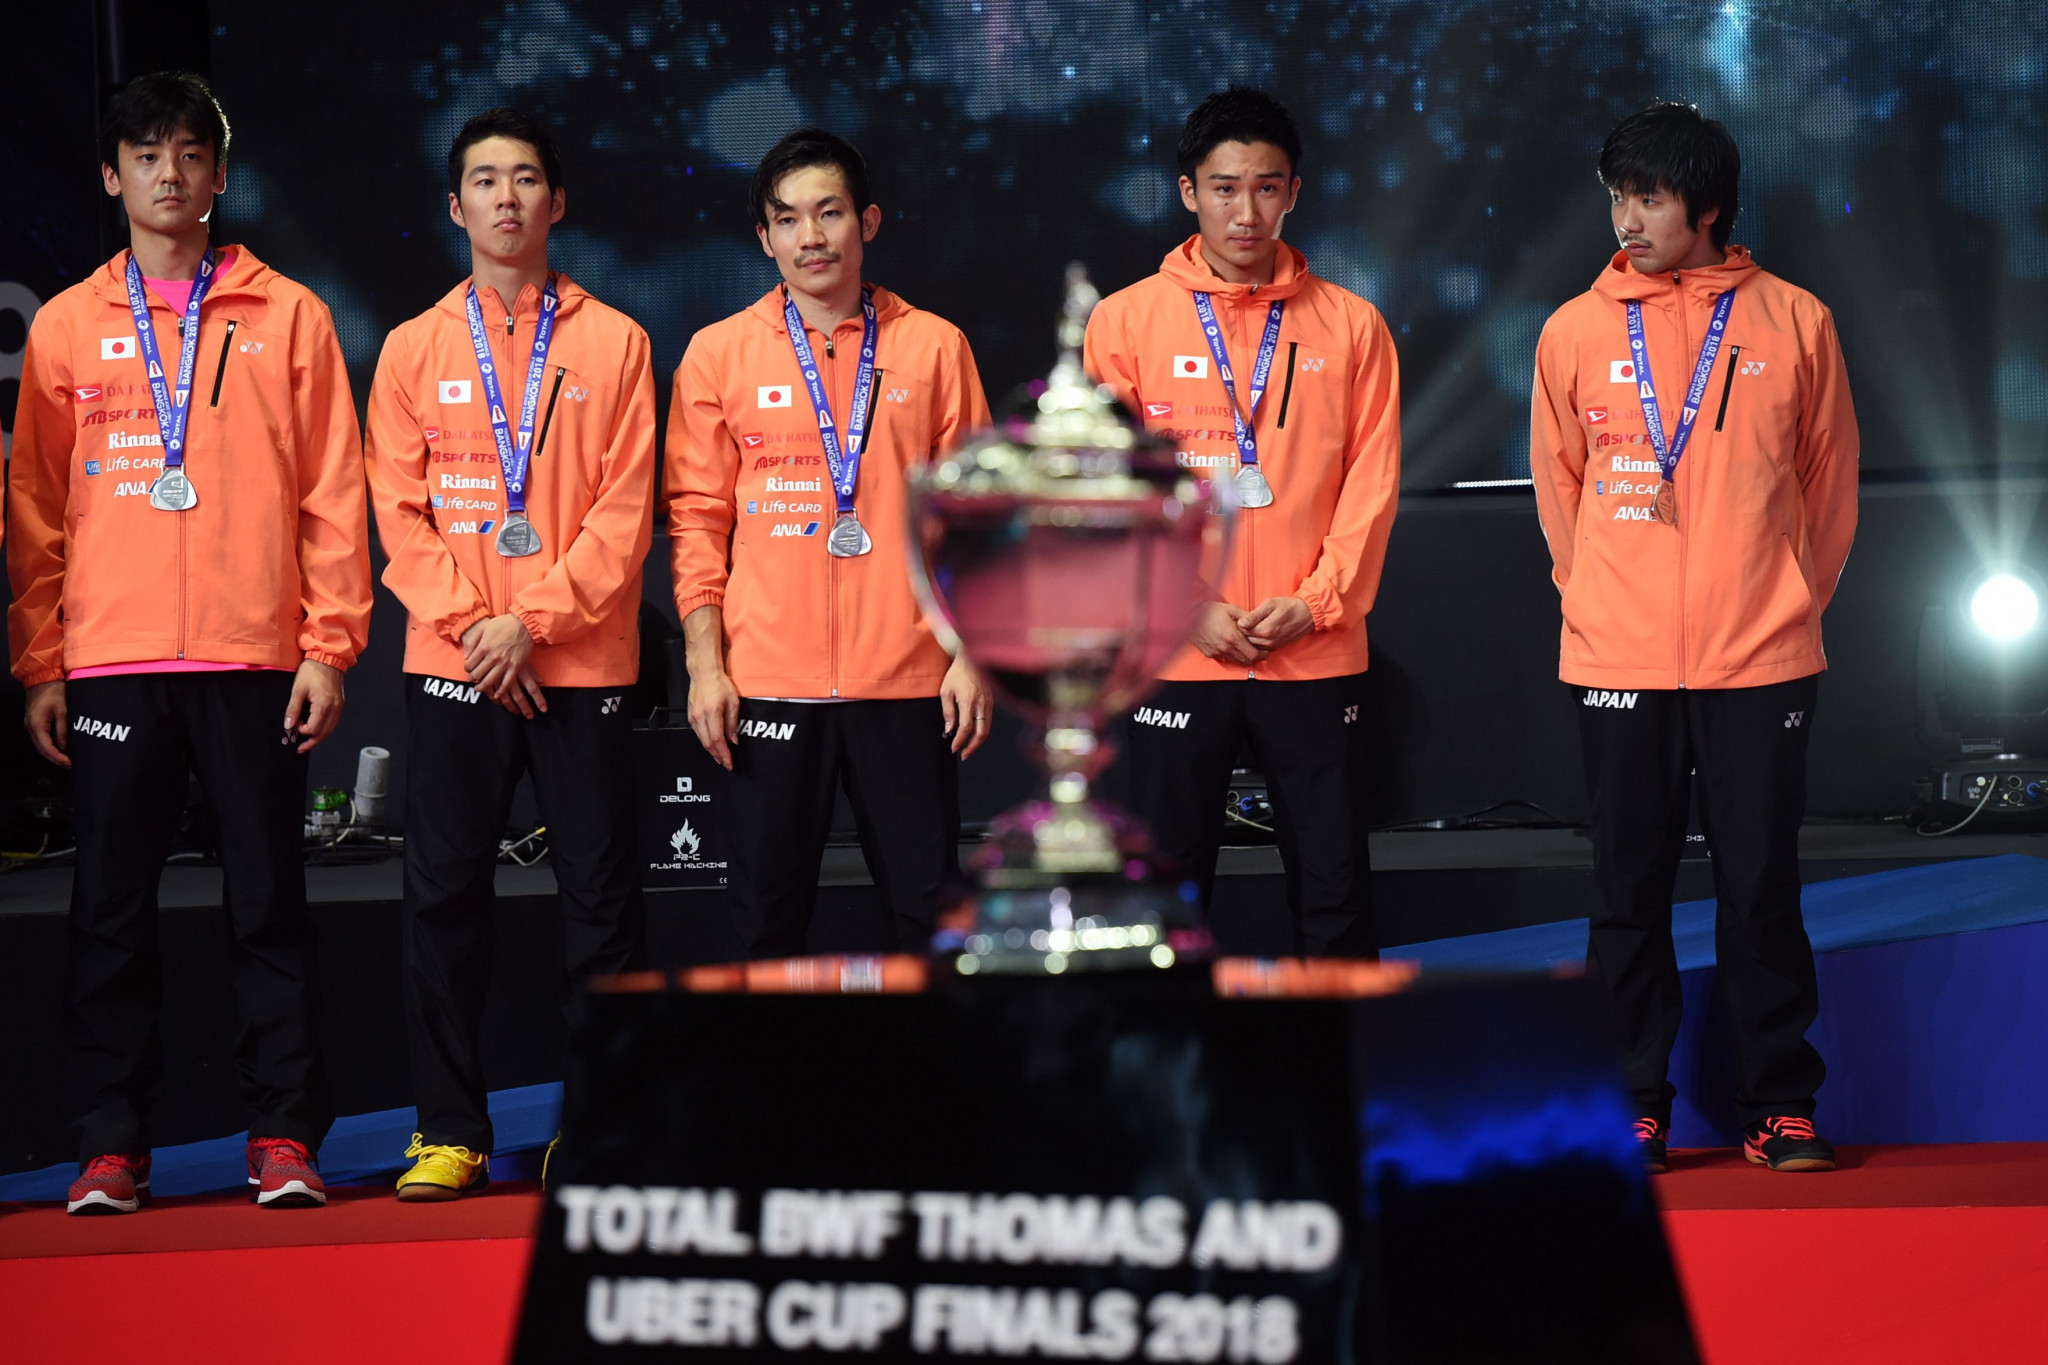 Badminton Asia official defends Thomas and Uber Cup Finals withdrawals after criticism